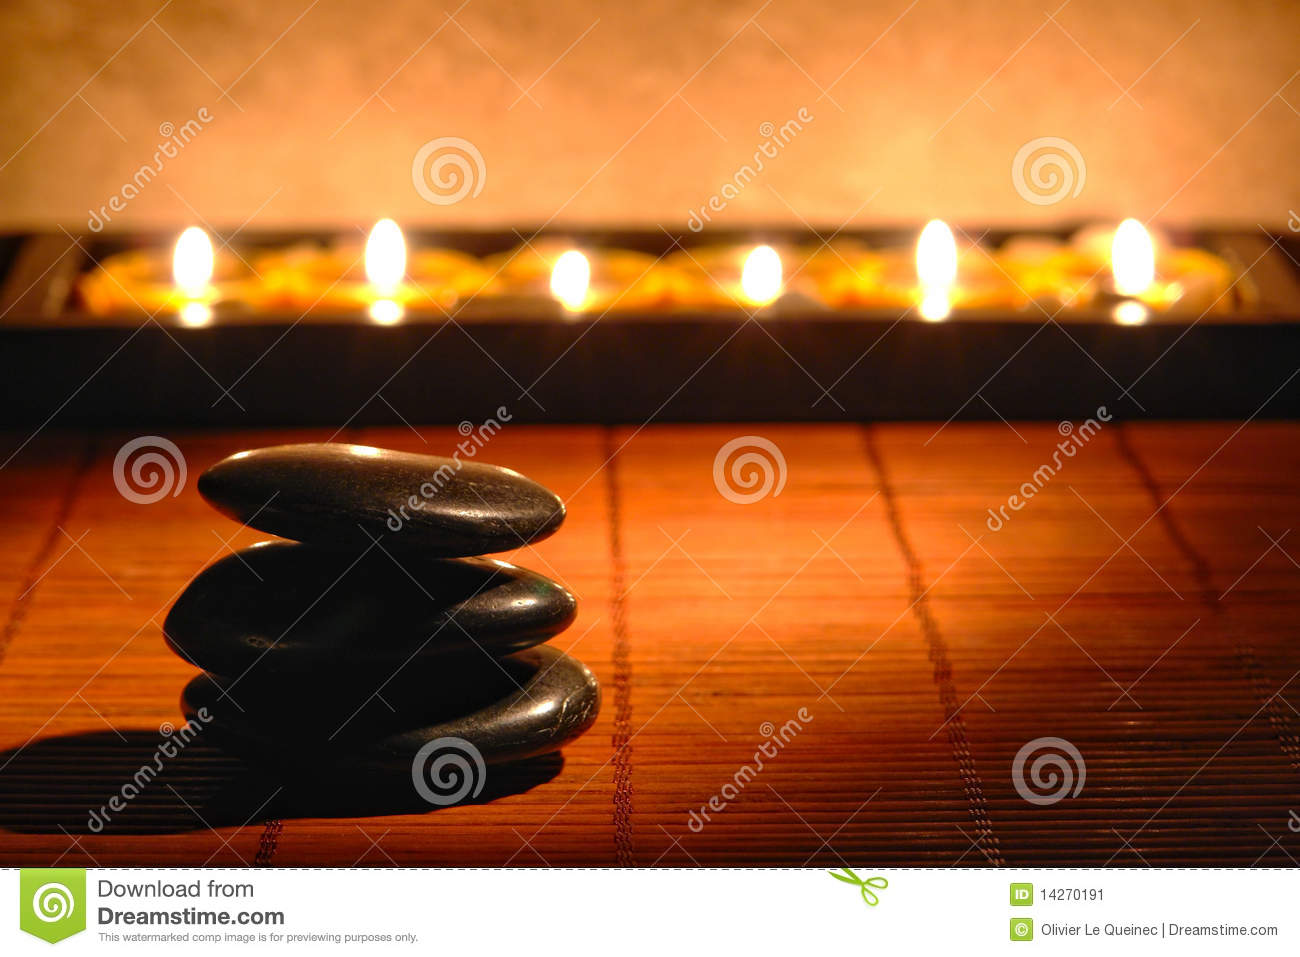 Stones Cairn and Candles for Quiet Zen Meditation